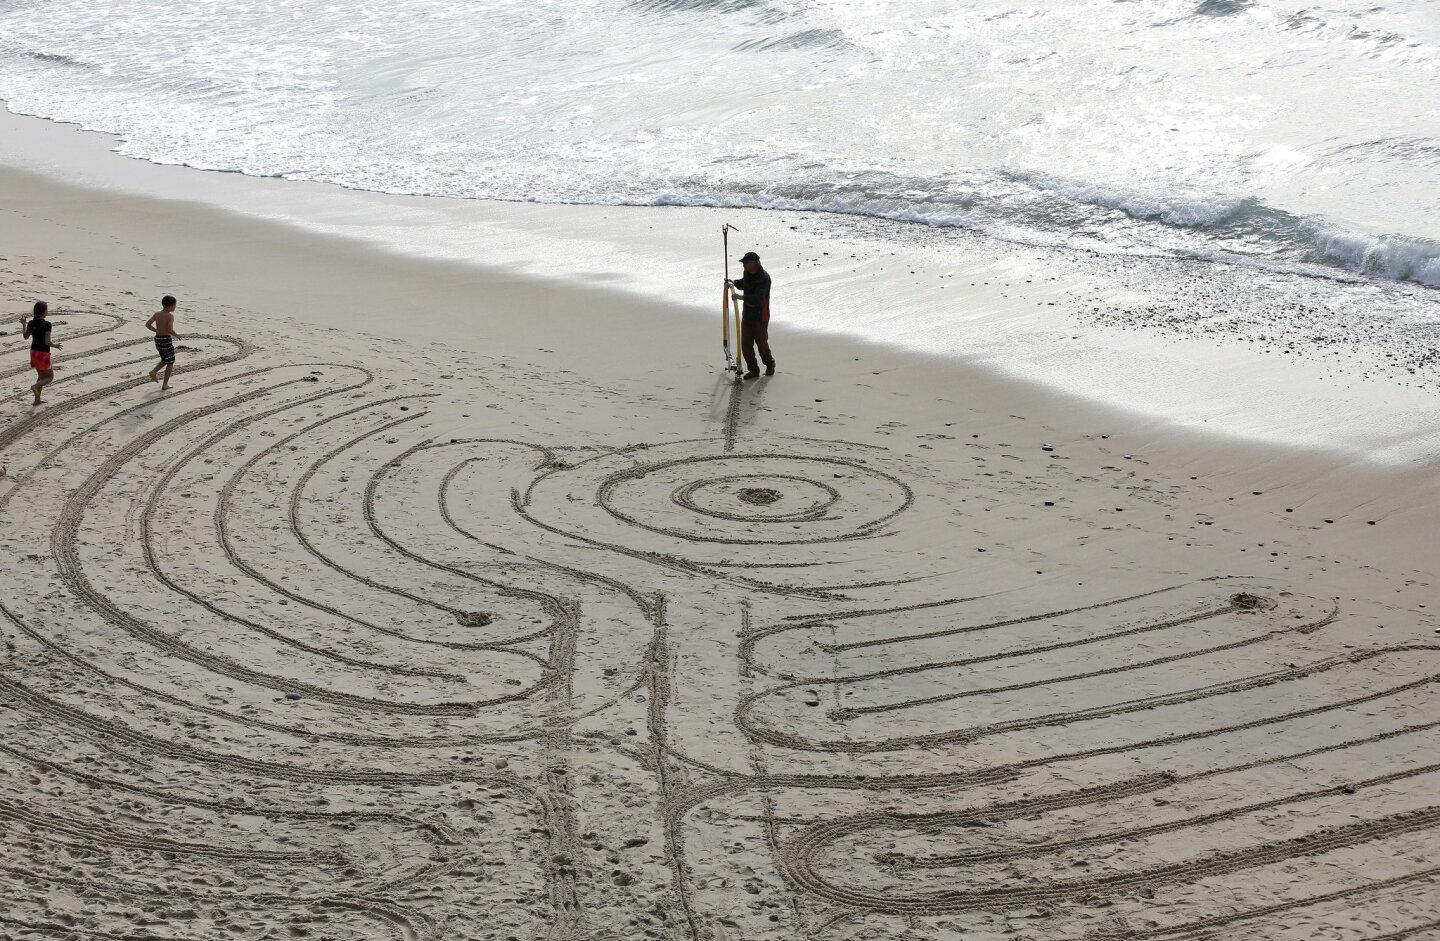 Encinitas artist Kirkos creates a huge labyrinth on the beach at Grandview Beach in Encinitas to ring in the new year.